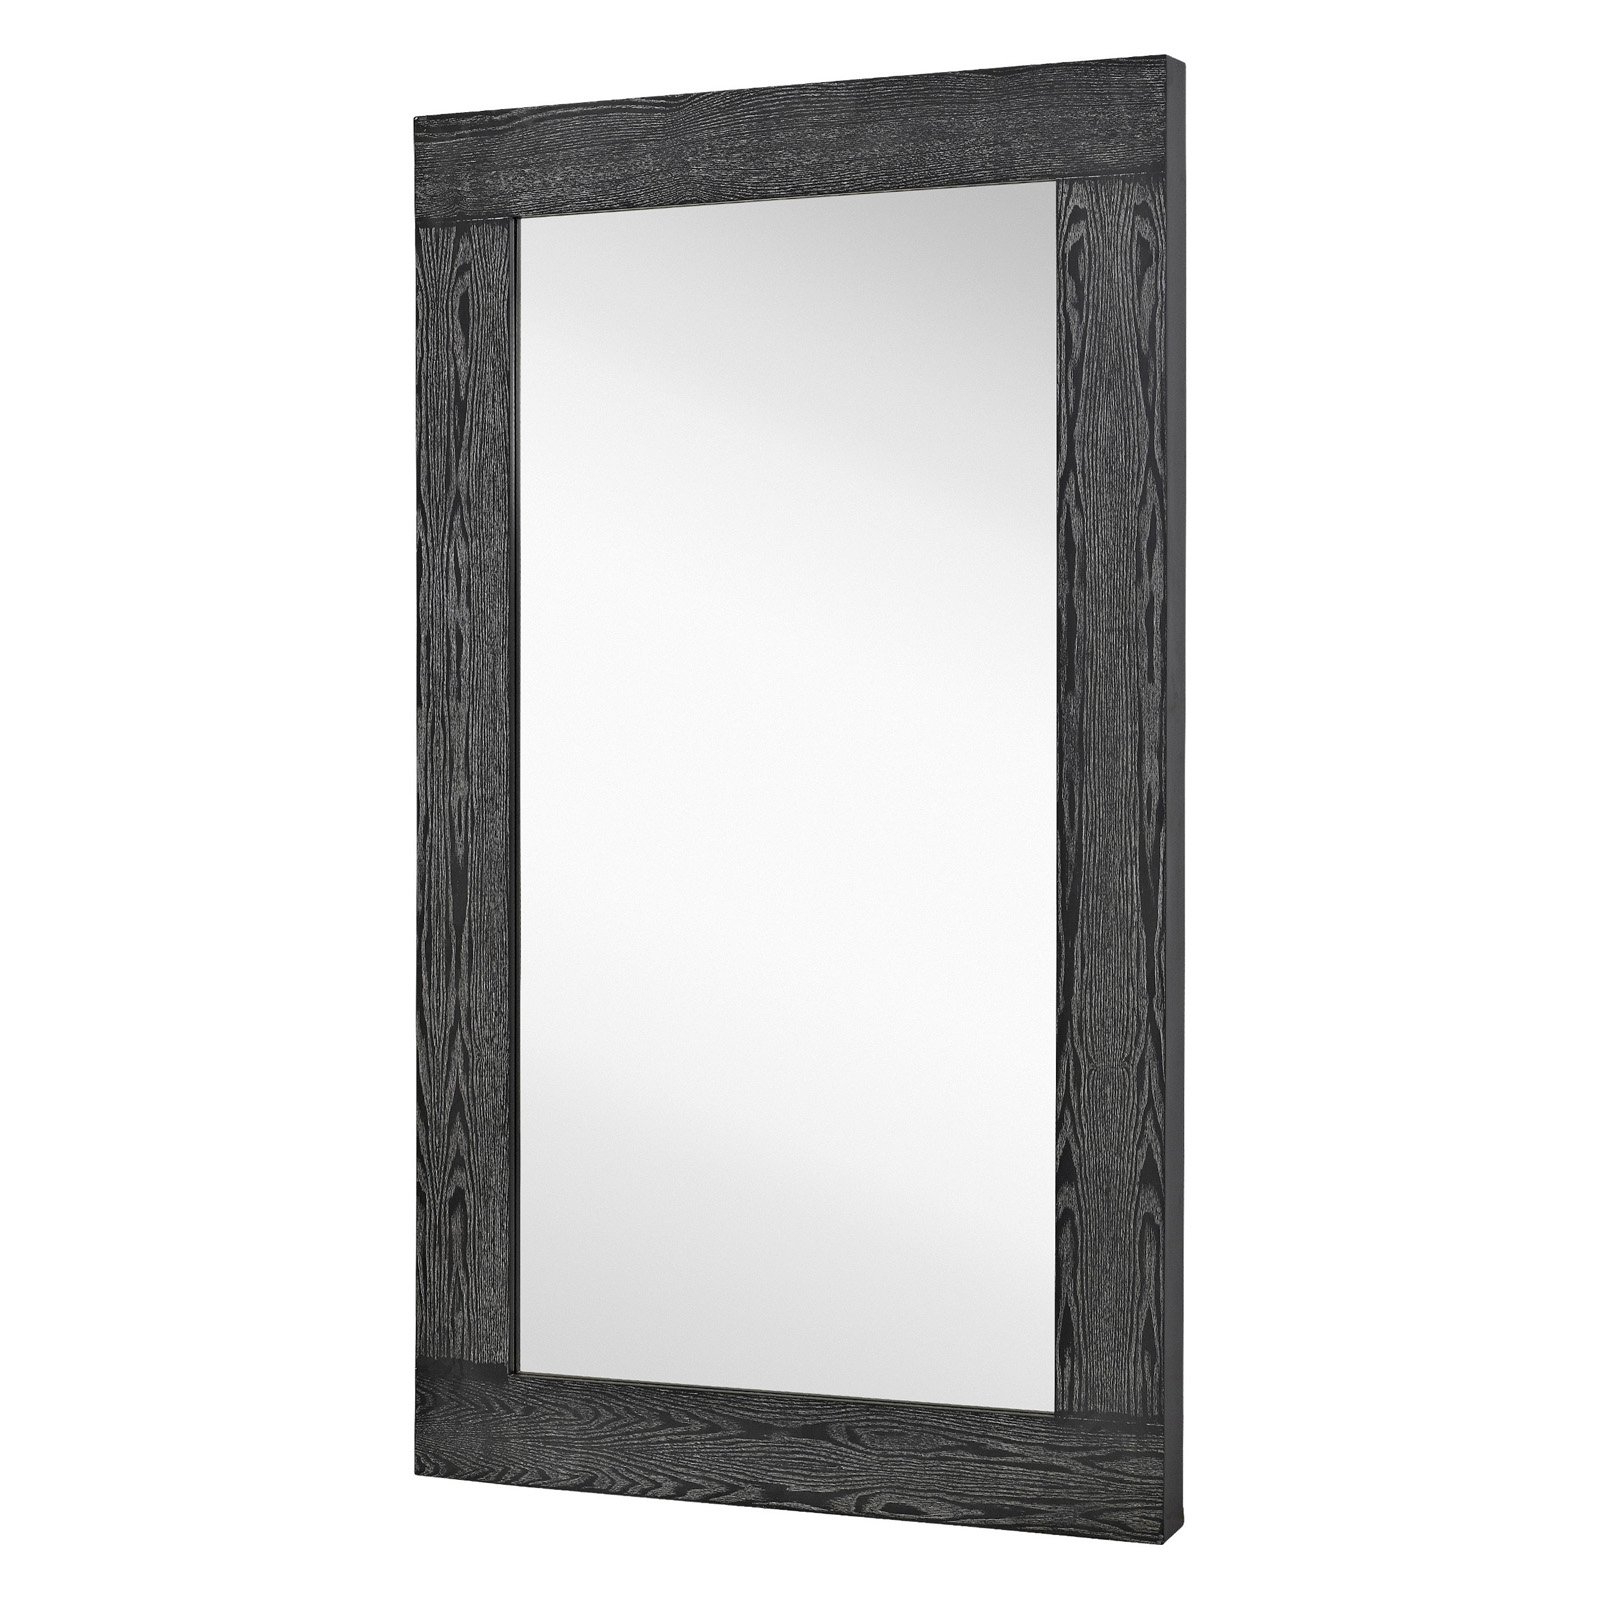 Most Current Majestic Oversized Modern Rectangular Wall Mirror Panel Within Rectangular Wall Mirrors (View 6 of 20)